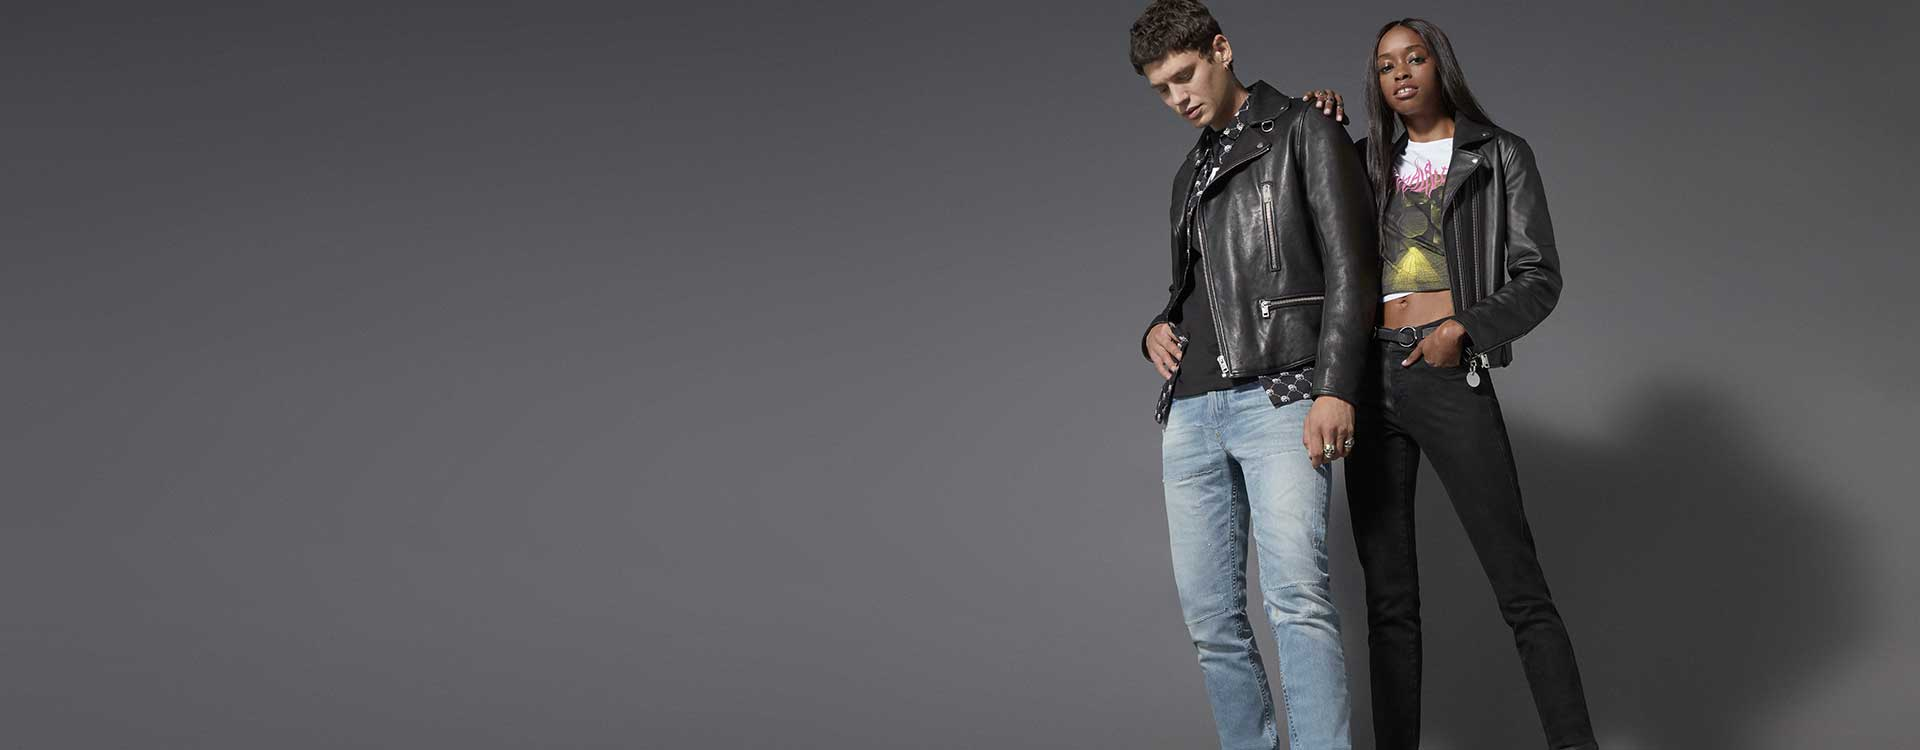 Nouvelles Arrivèes | Diesel Jeans & Apparel for Men and Women